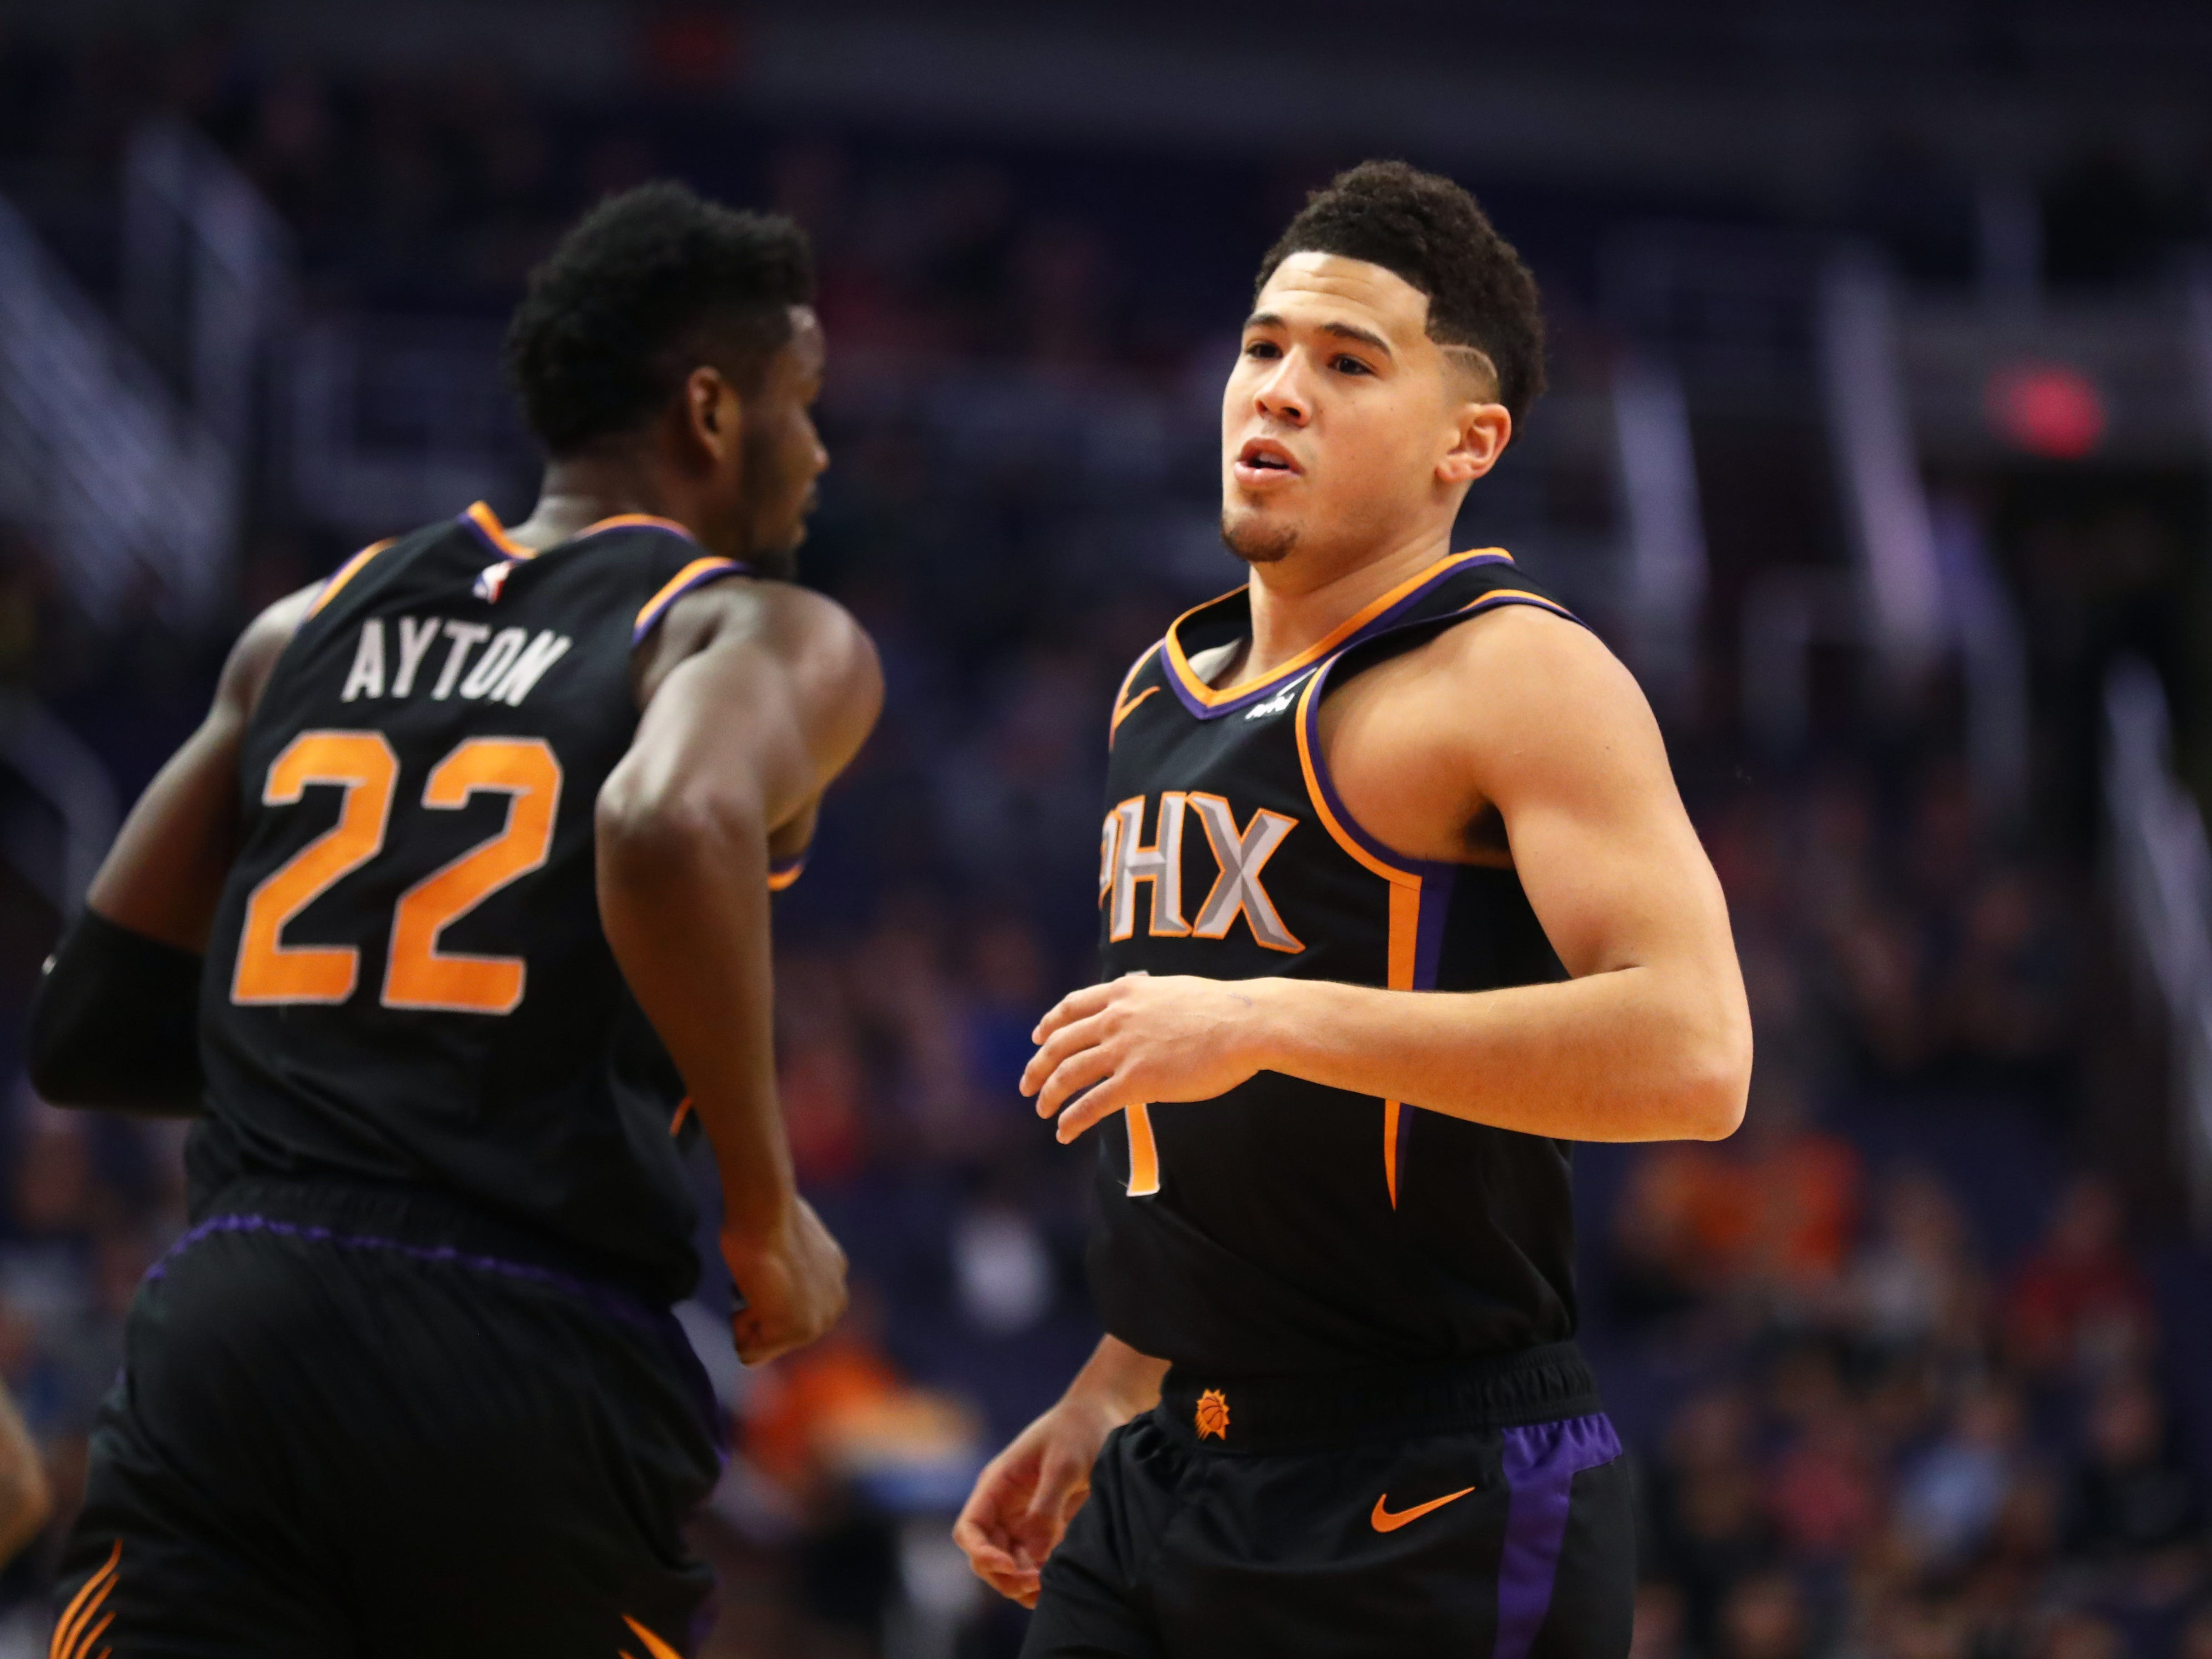 Dec 15, 2018; Phoenix, AZ, USA; Phoenix Suns guard Devin Booker (right) and center Deandre Ayton against the Minnesota Timberwolves in the first half at Talking Stick Resort Arena. Mandatory Credit: Mark J. Rebilas-USA TODAY Sports